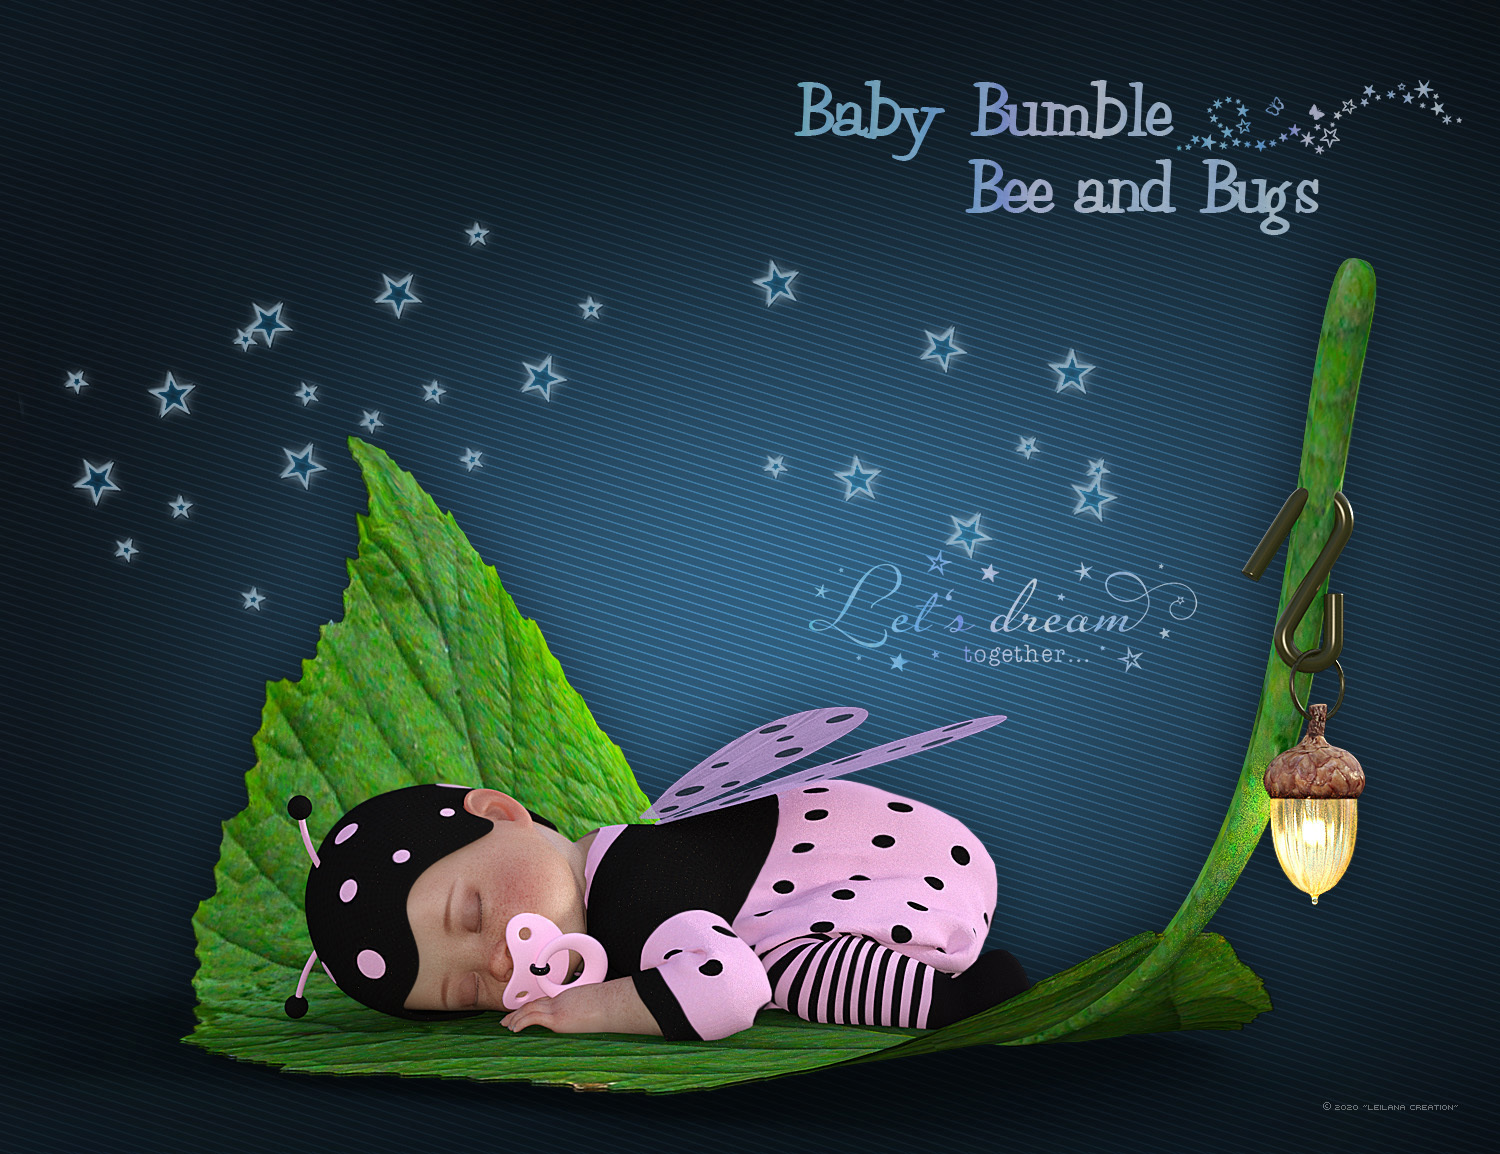 Baby Bumble Bee & Bugs by Leilana